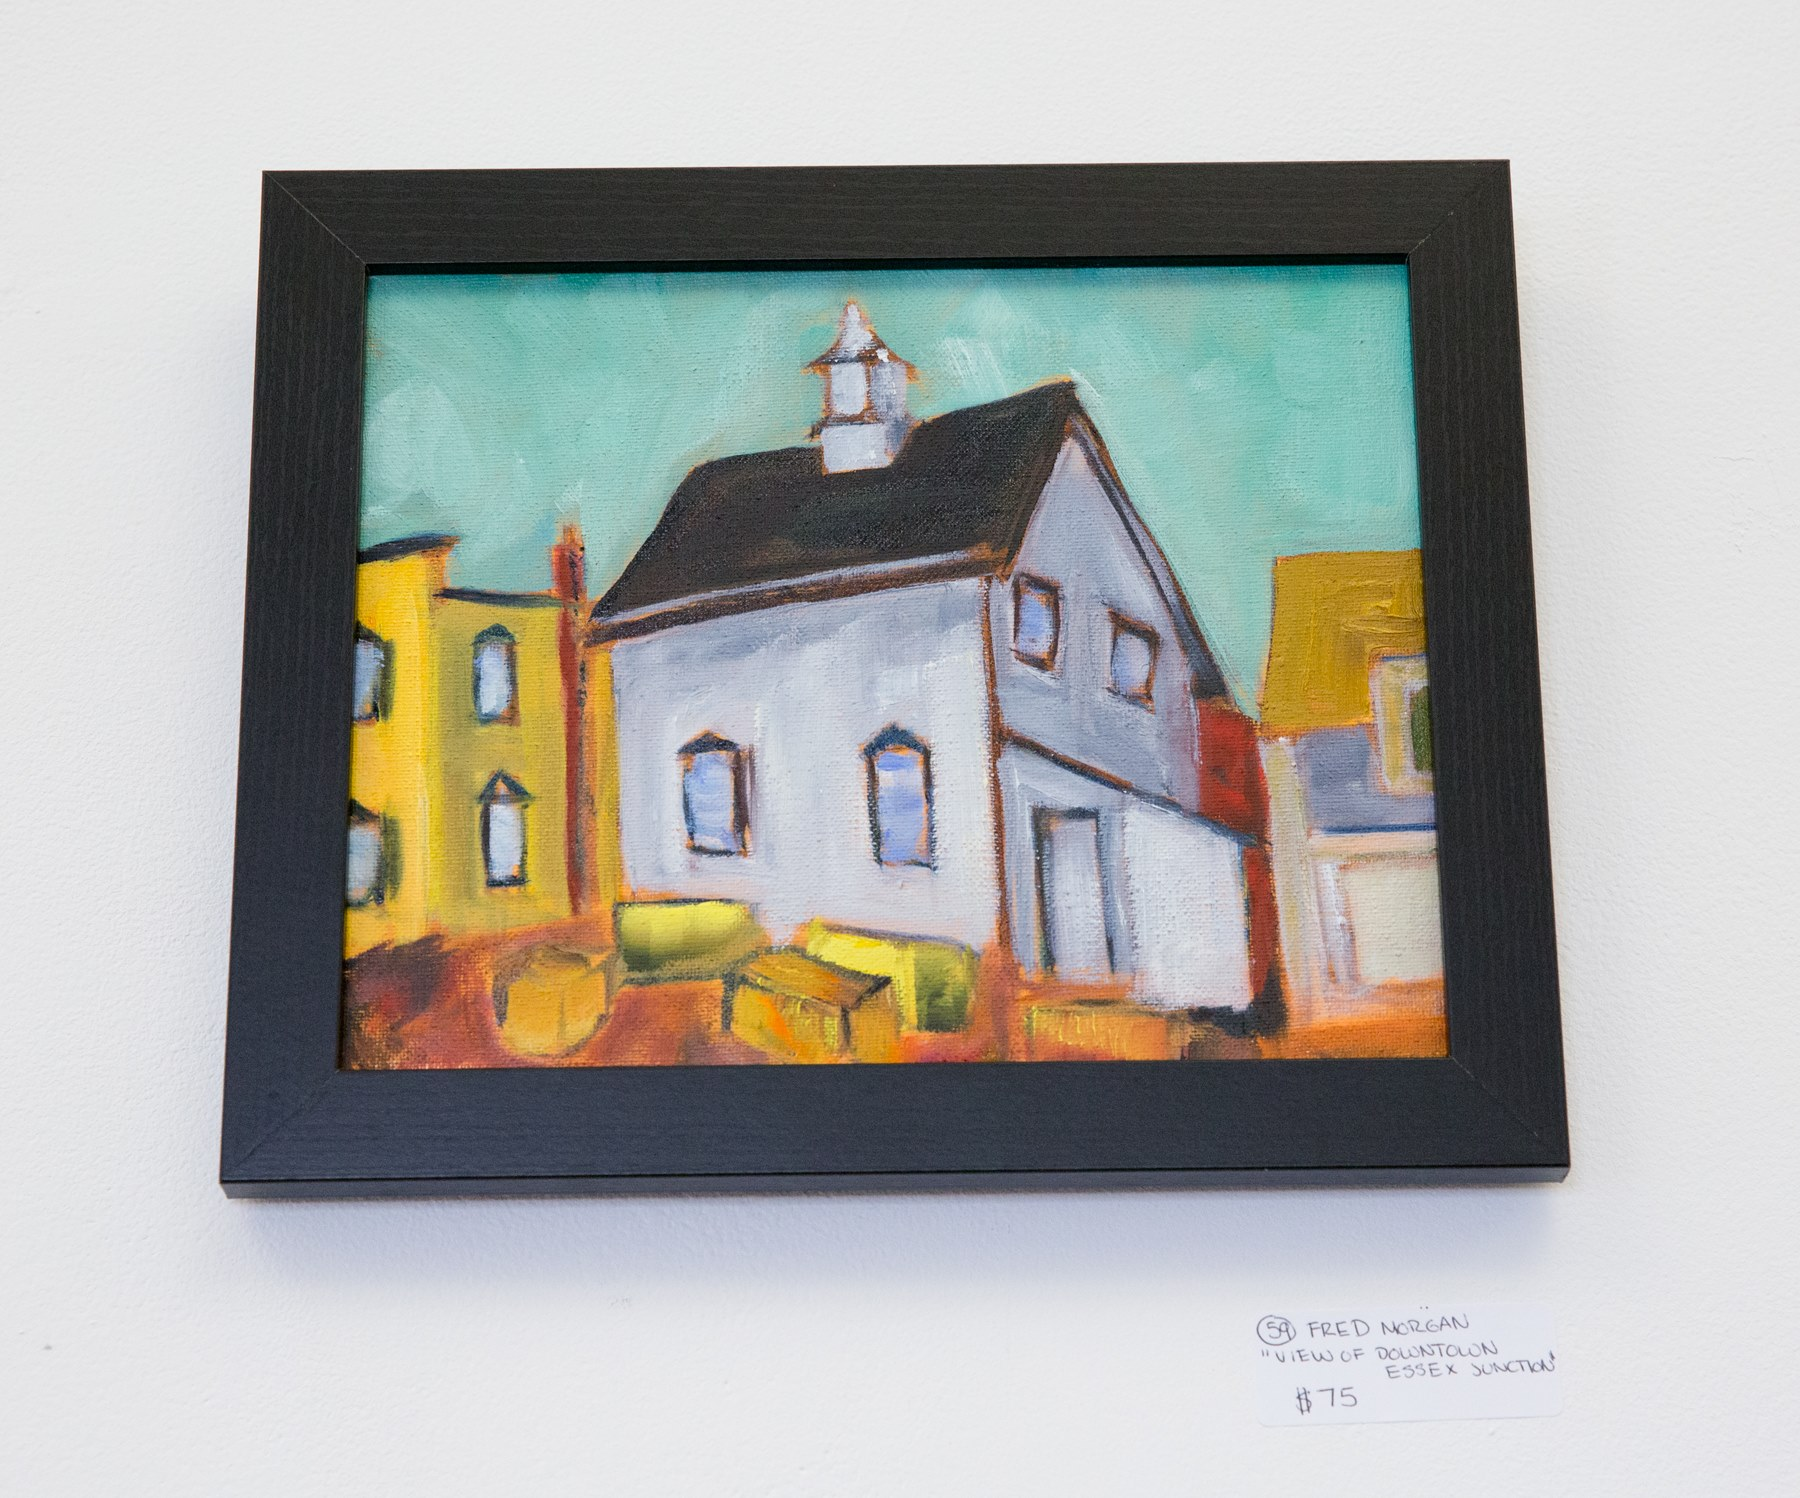 """Fred Morgan - """"View of Downtown Essex Junction"""" For Sale: $75"""